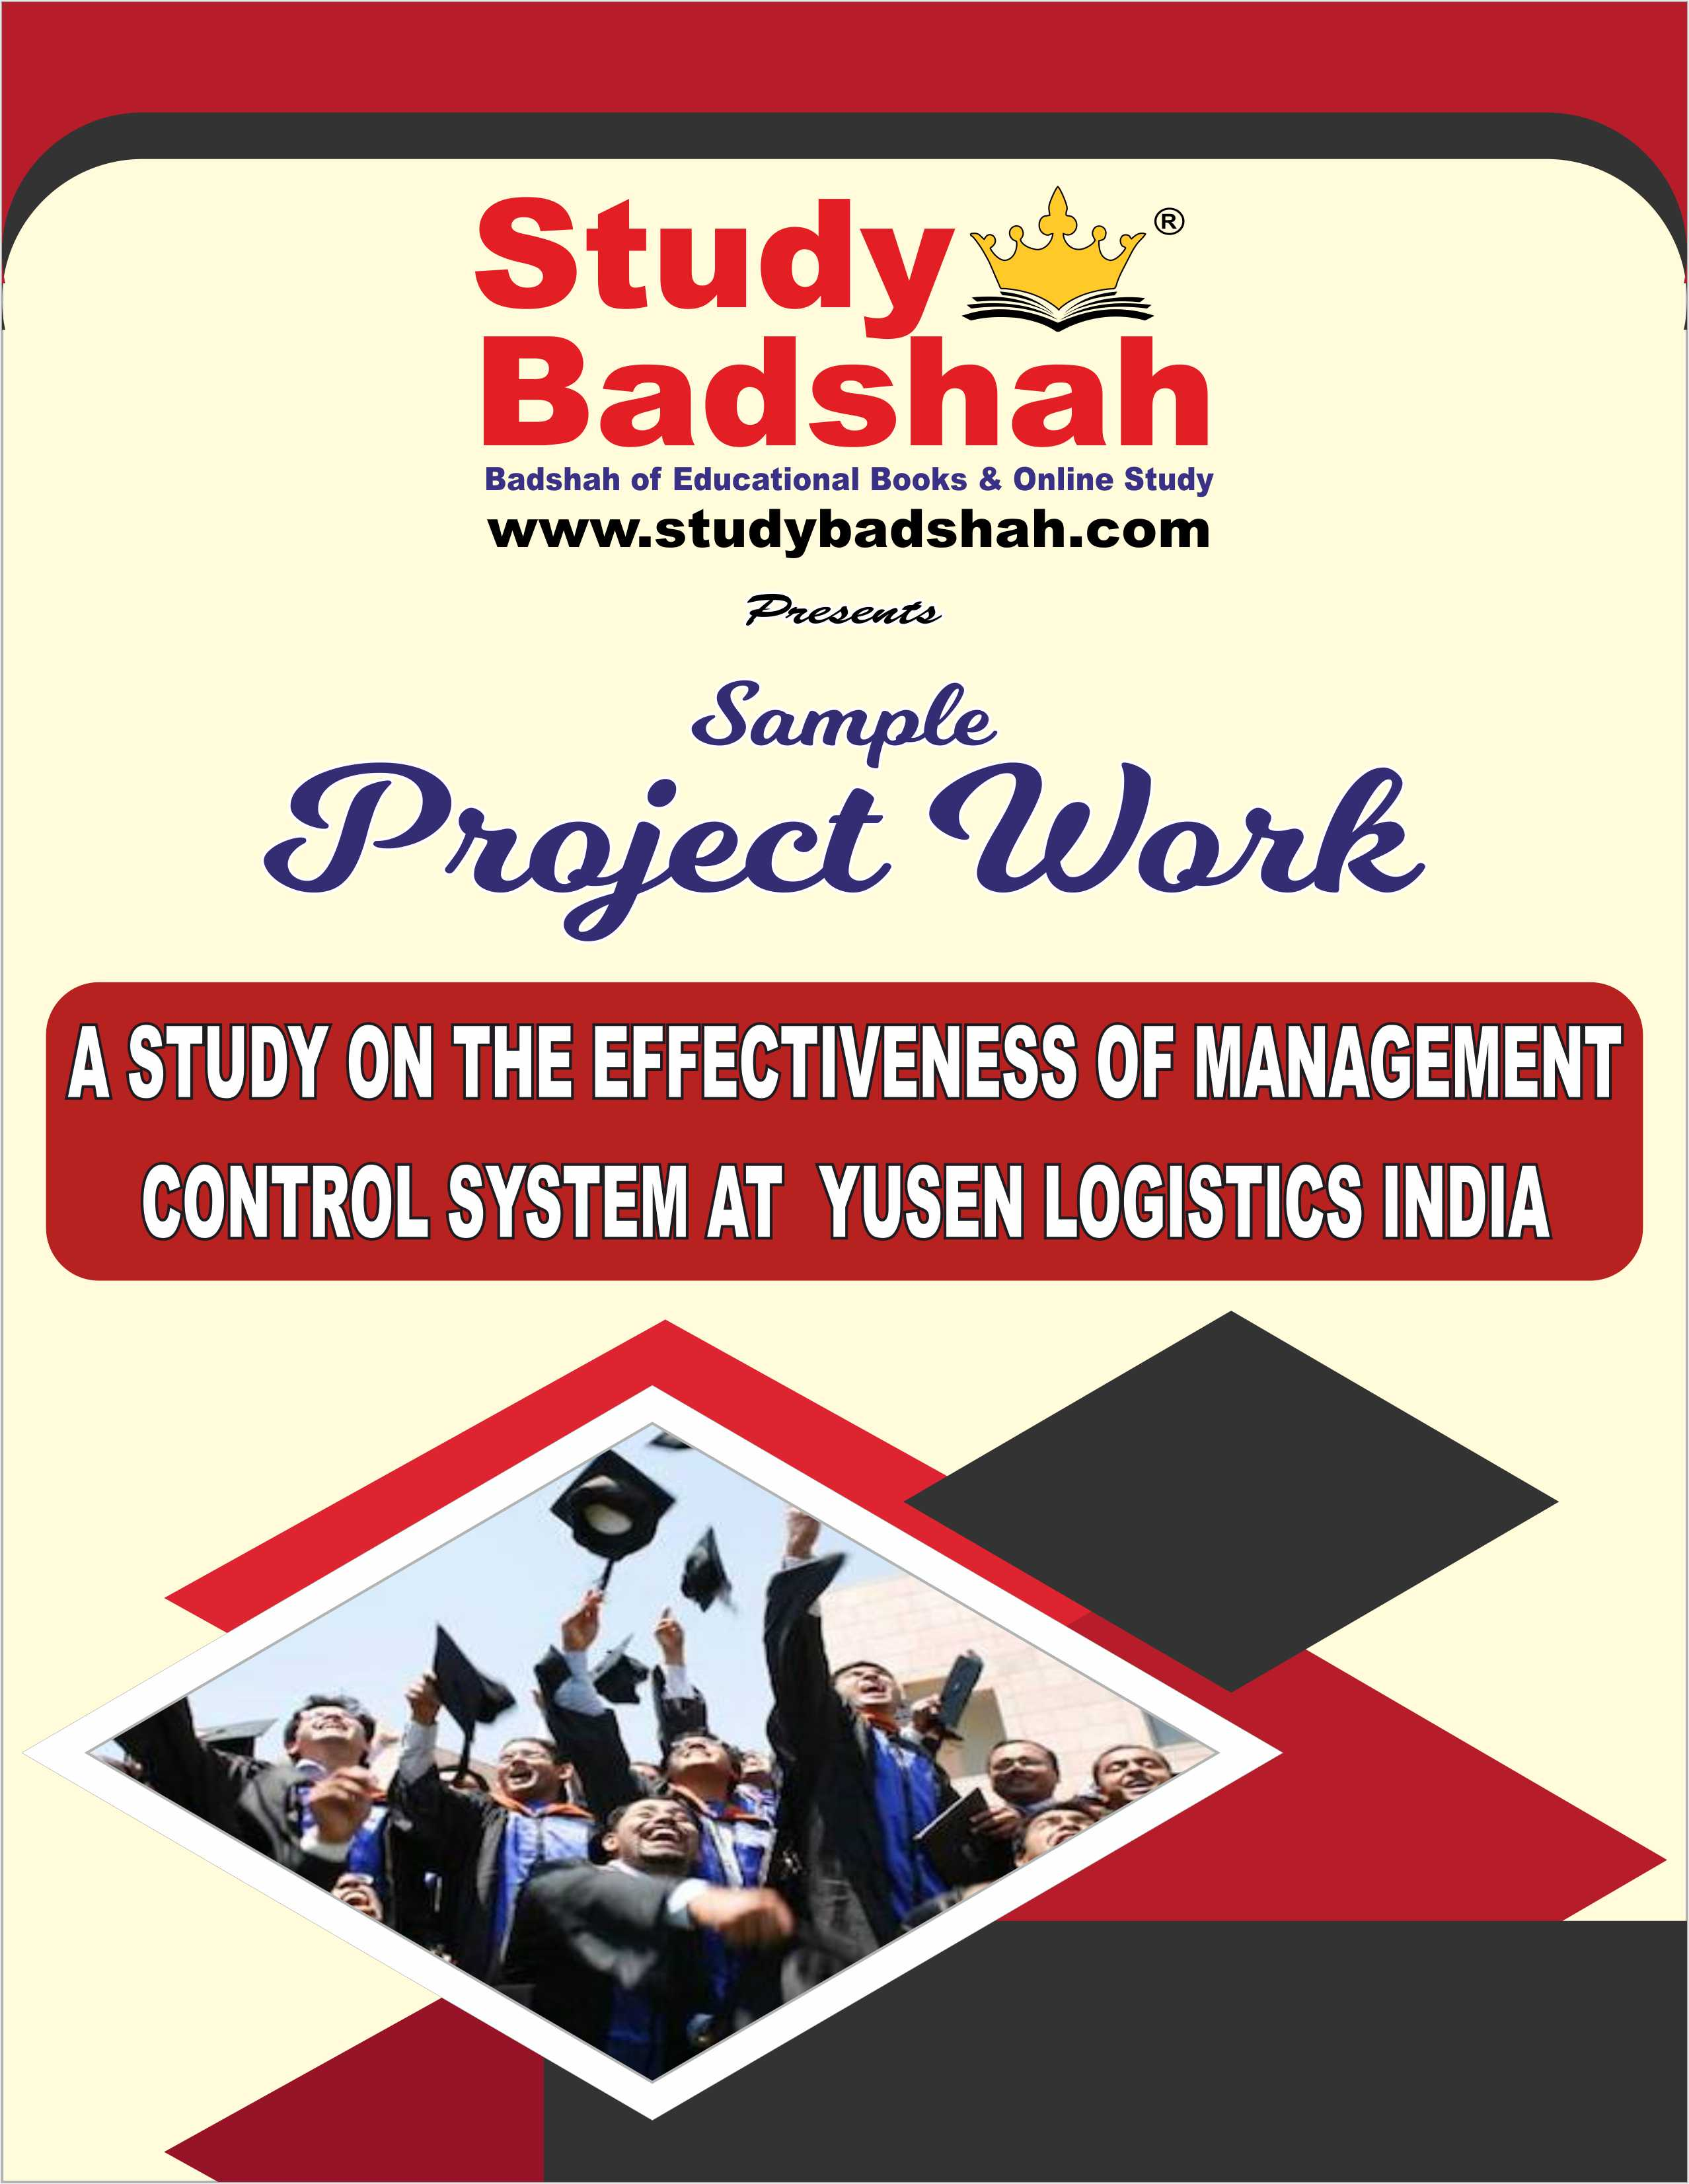 A STUDY ON THE EFFECTIVENESS OF MANAGEMENT CONTROL SYSTEM AT  YUSEN LOGISTICS INDIA